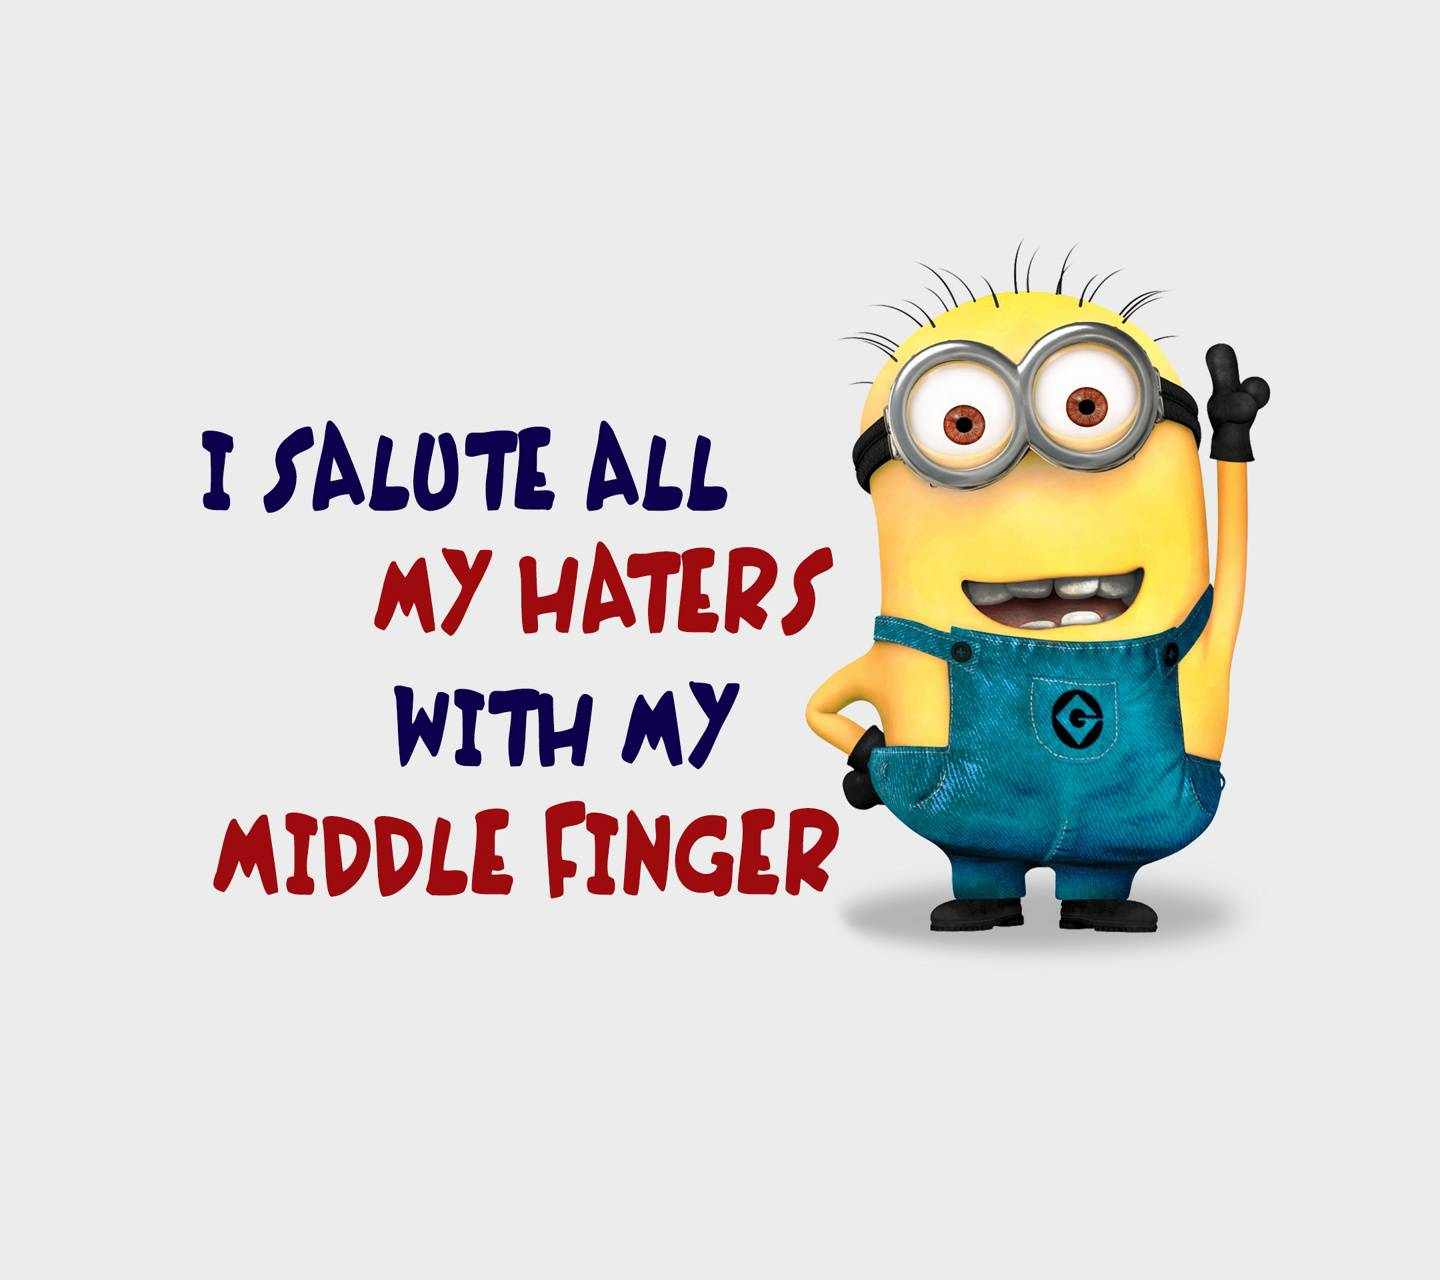 My Haters